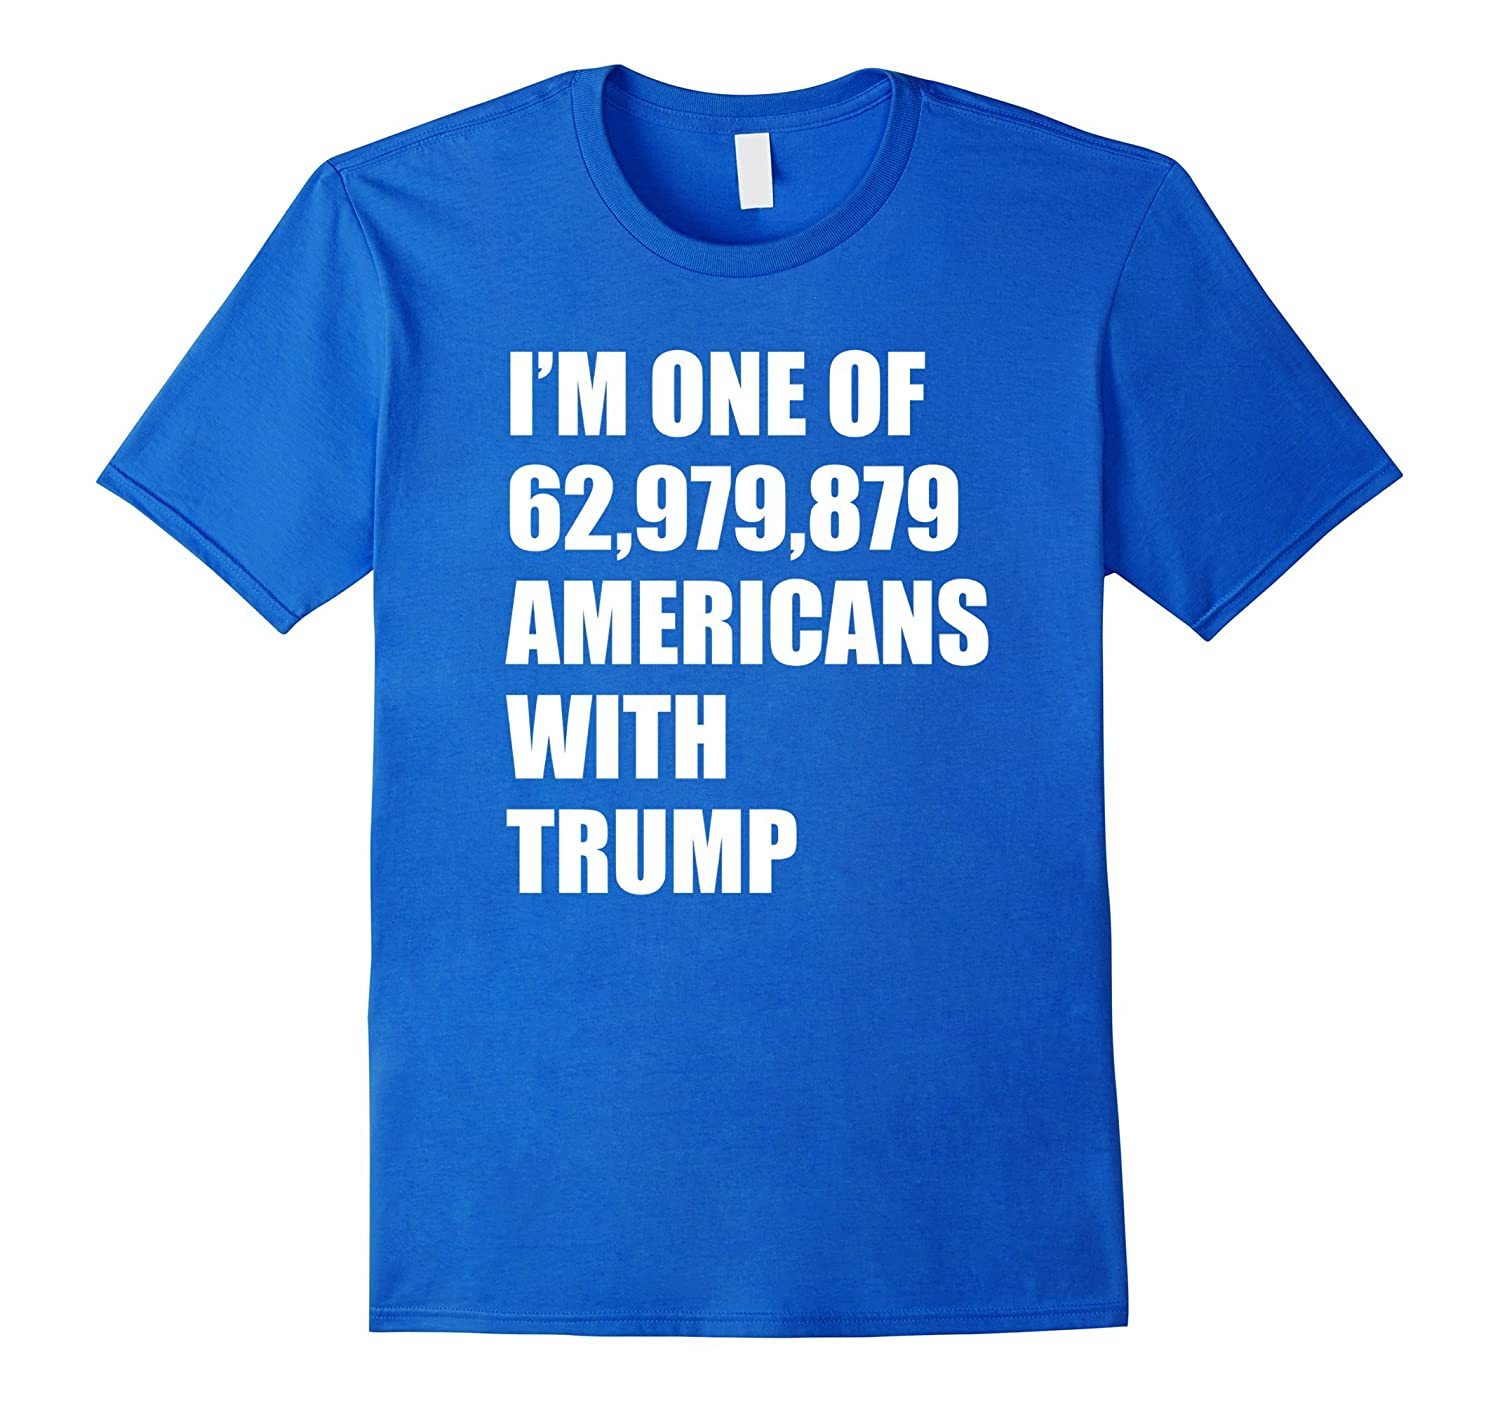 Americans with Trump Support Our President T Shirt Patriotic-CD